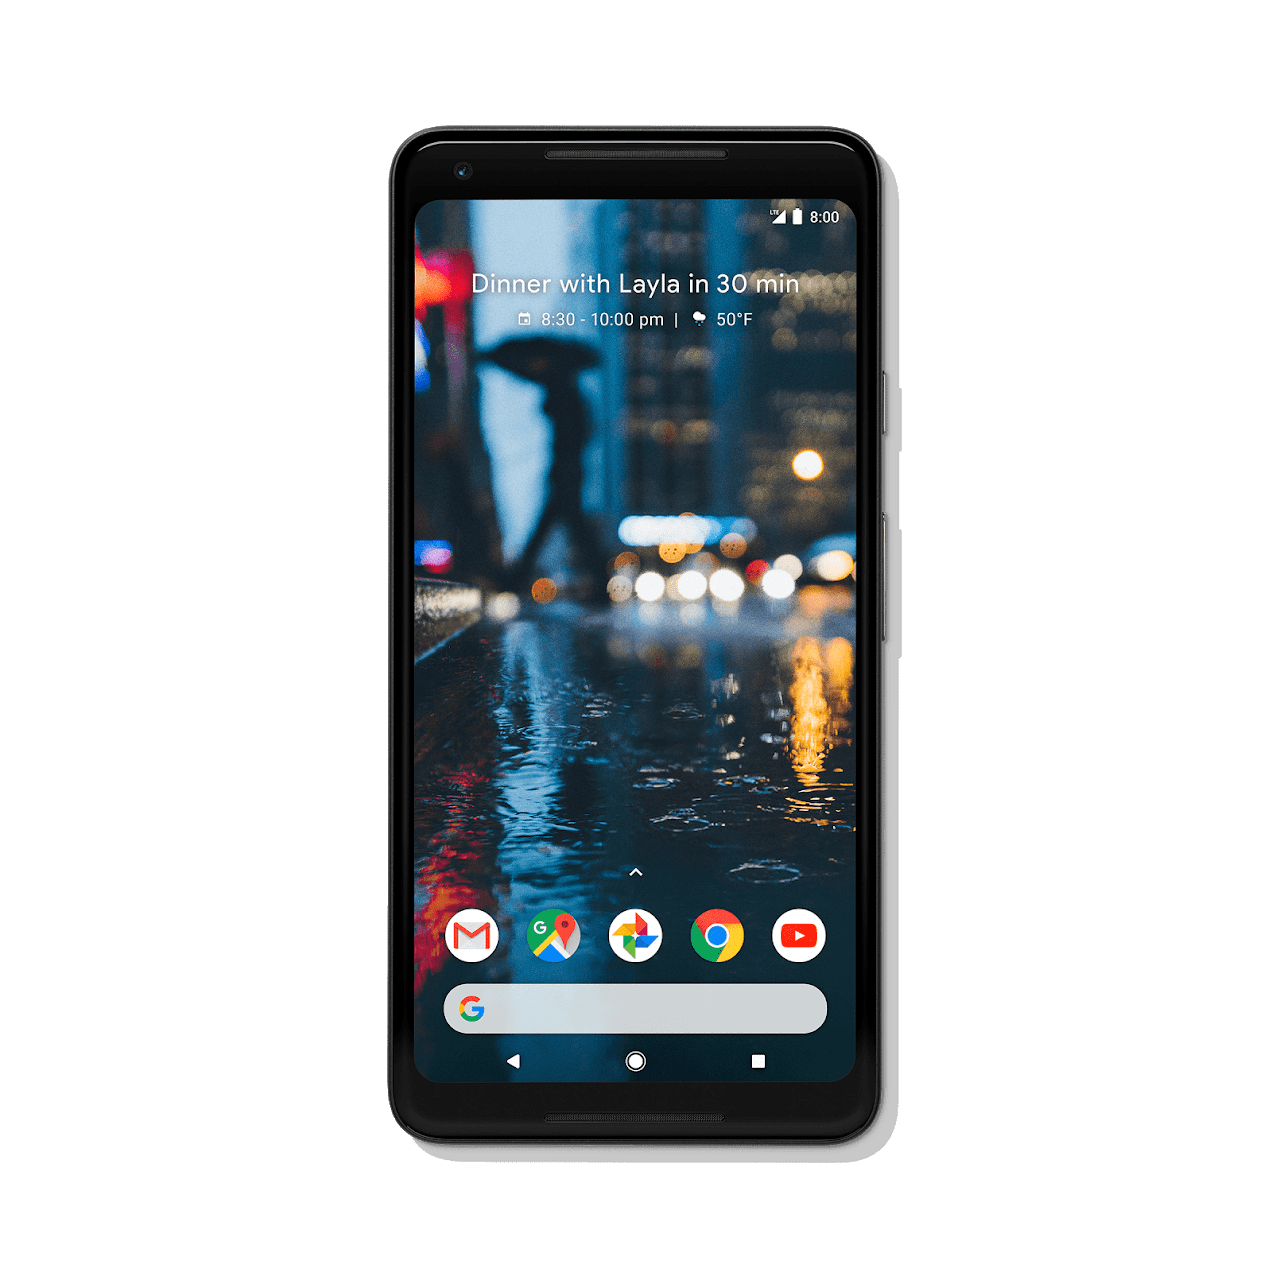 Google Pixel 2 Xl 949 00 Water Resistant Fast Charging Long Lasting With Pixel 2 Xl You Ll Get Up T With Images Unlocked Cell Phones Prepaid Phones Cell Phone Deals